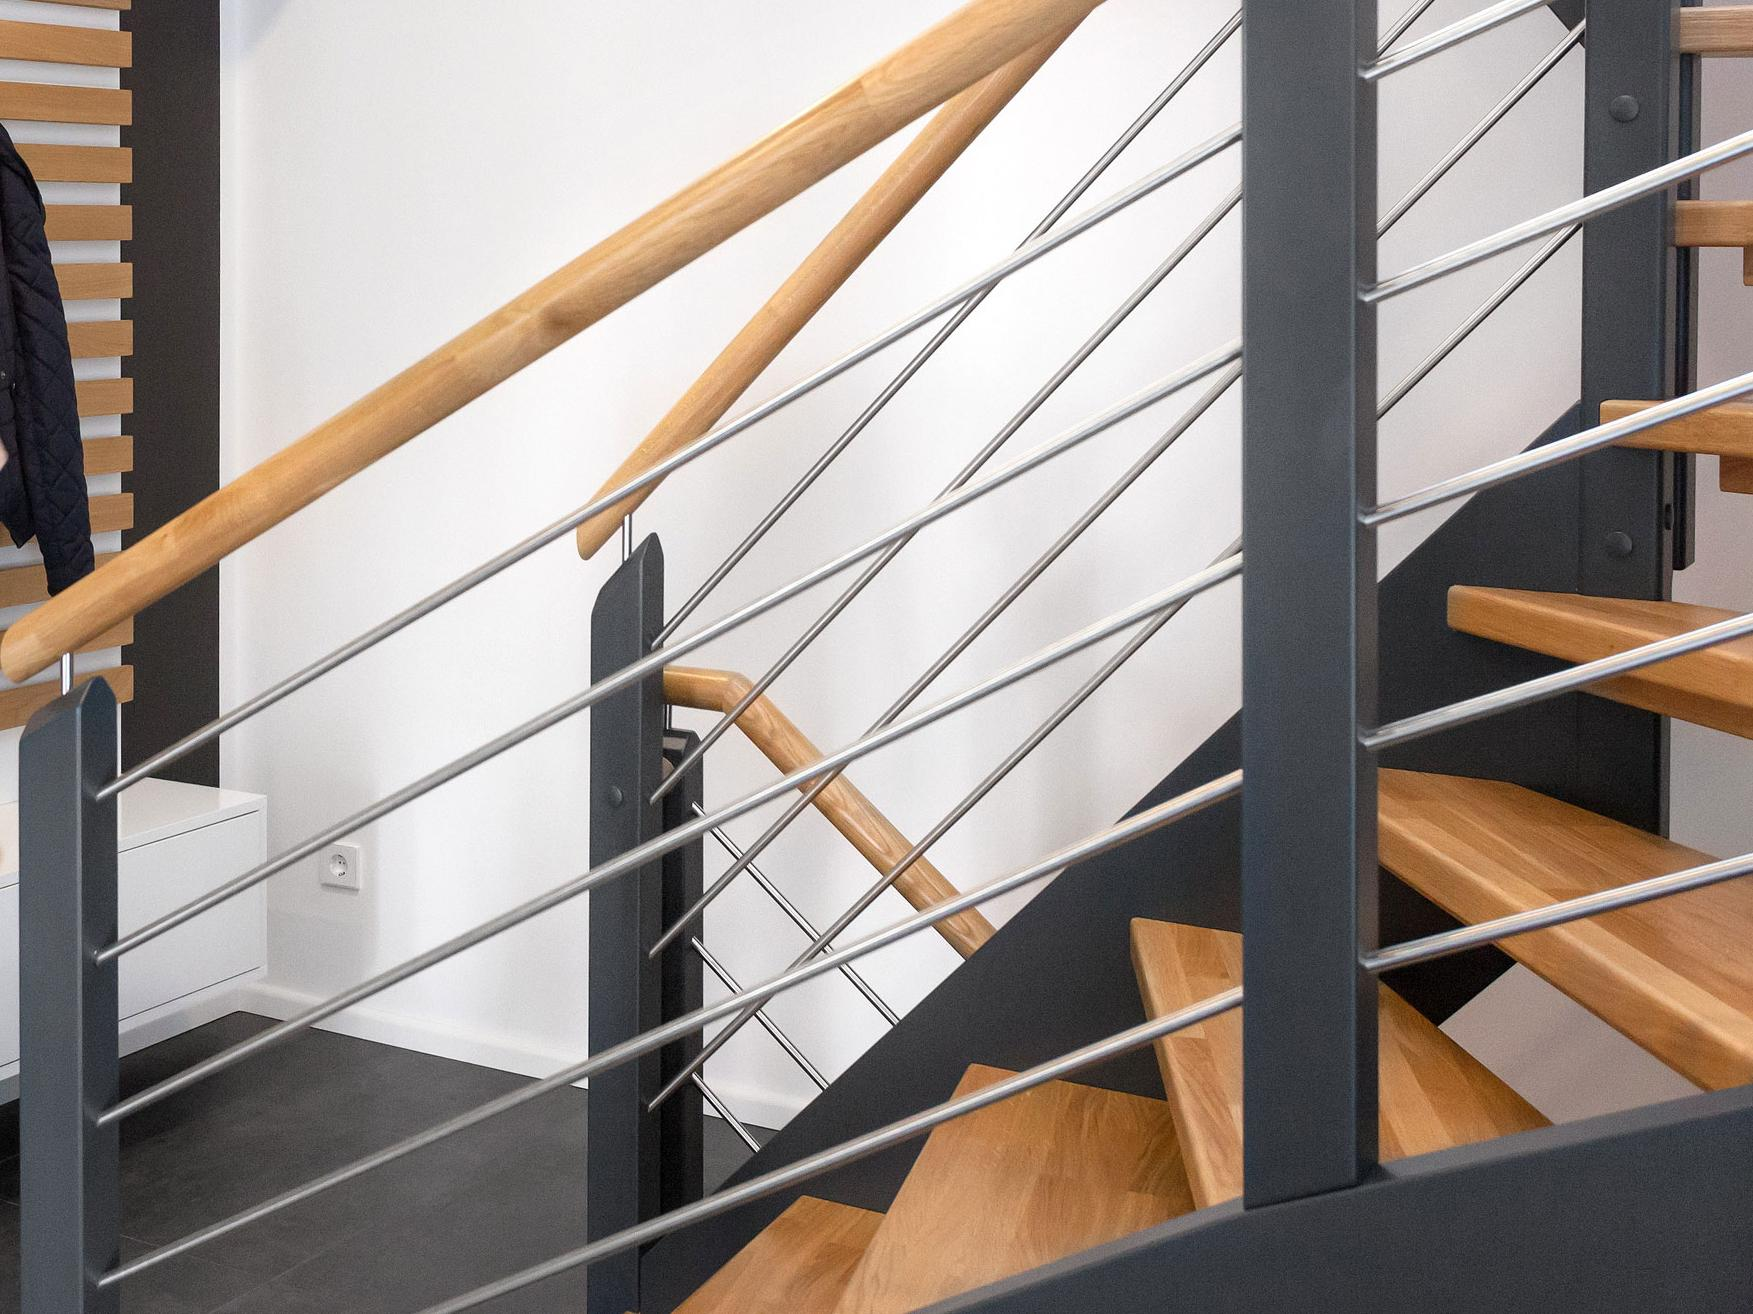 Banister stainless steel wood combination